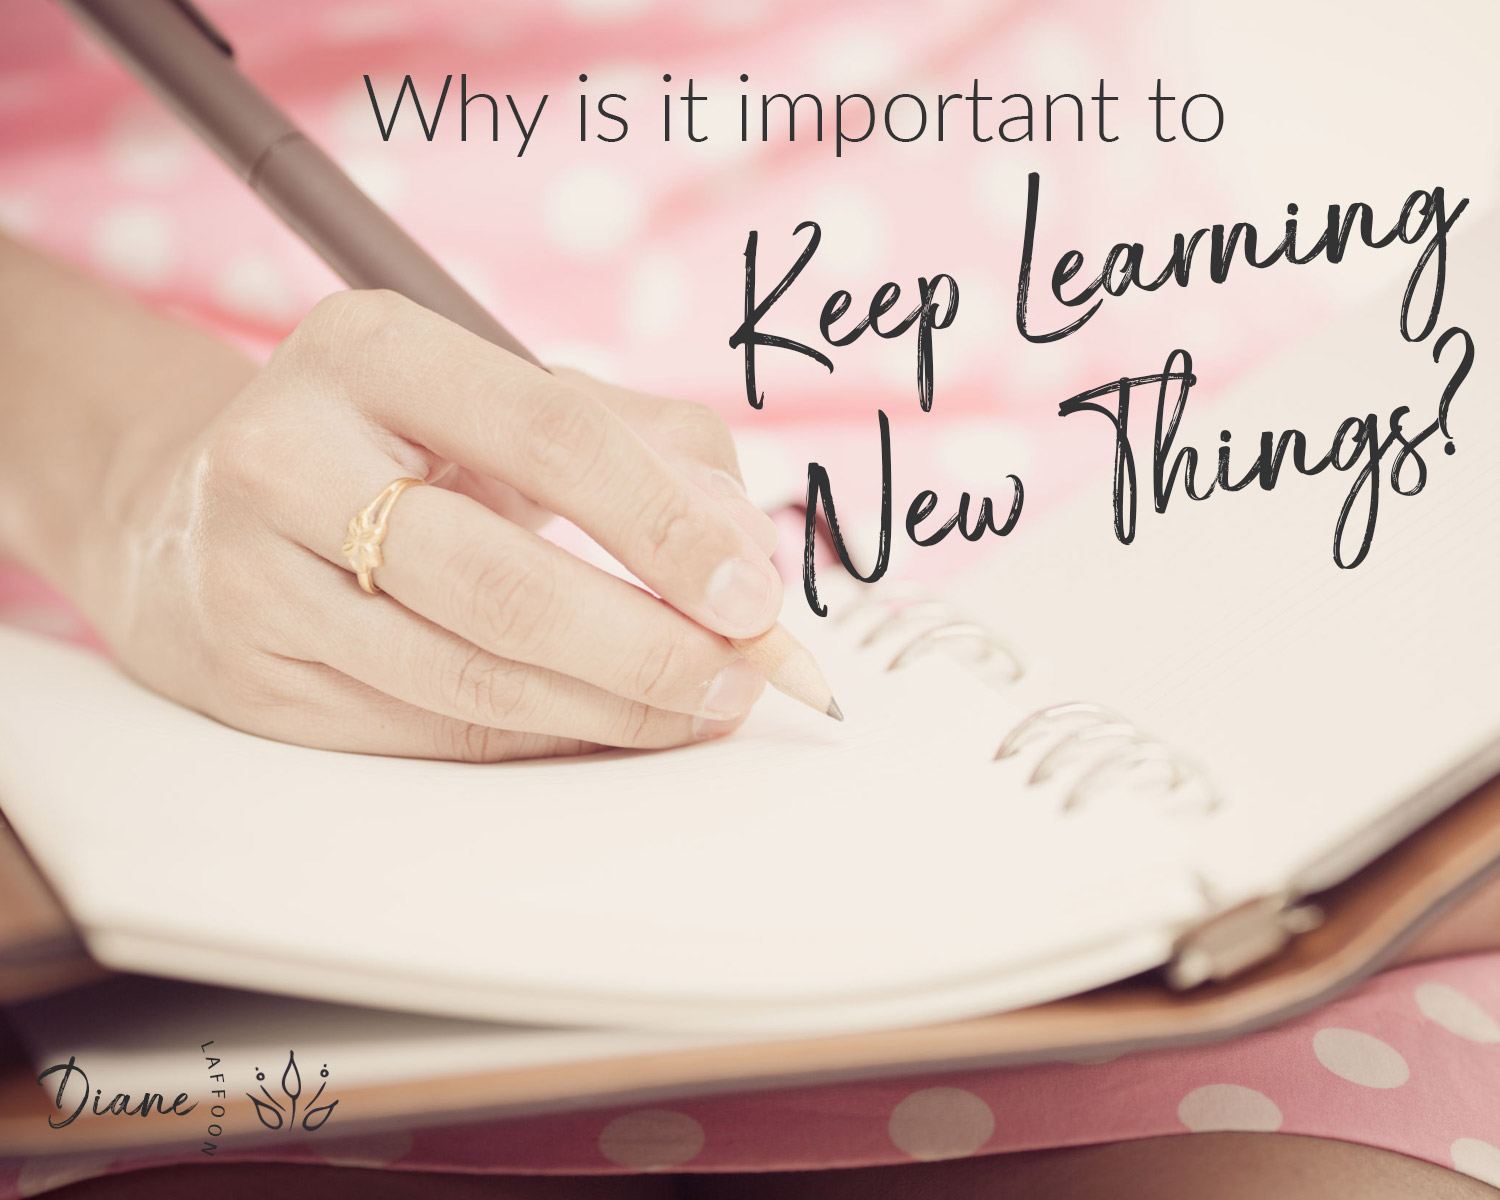 keep learning new things